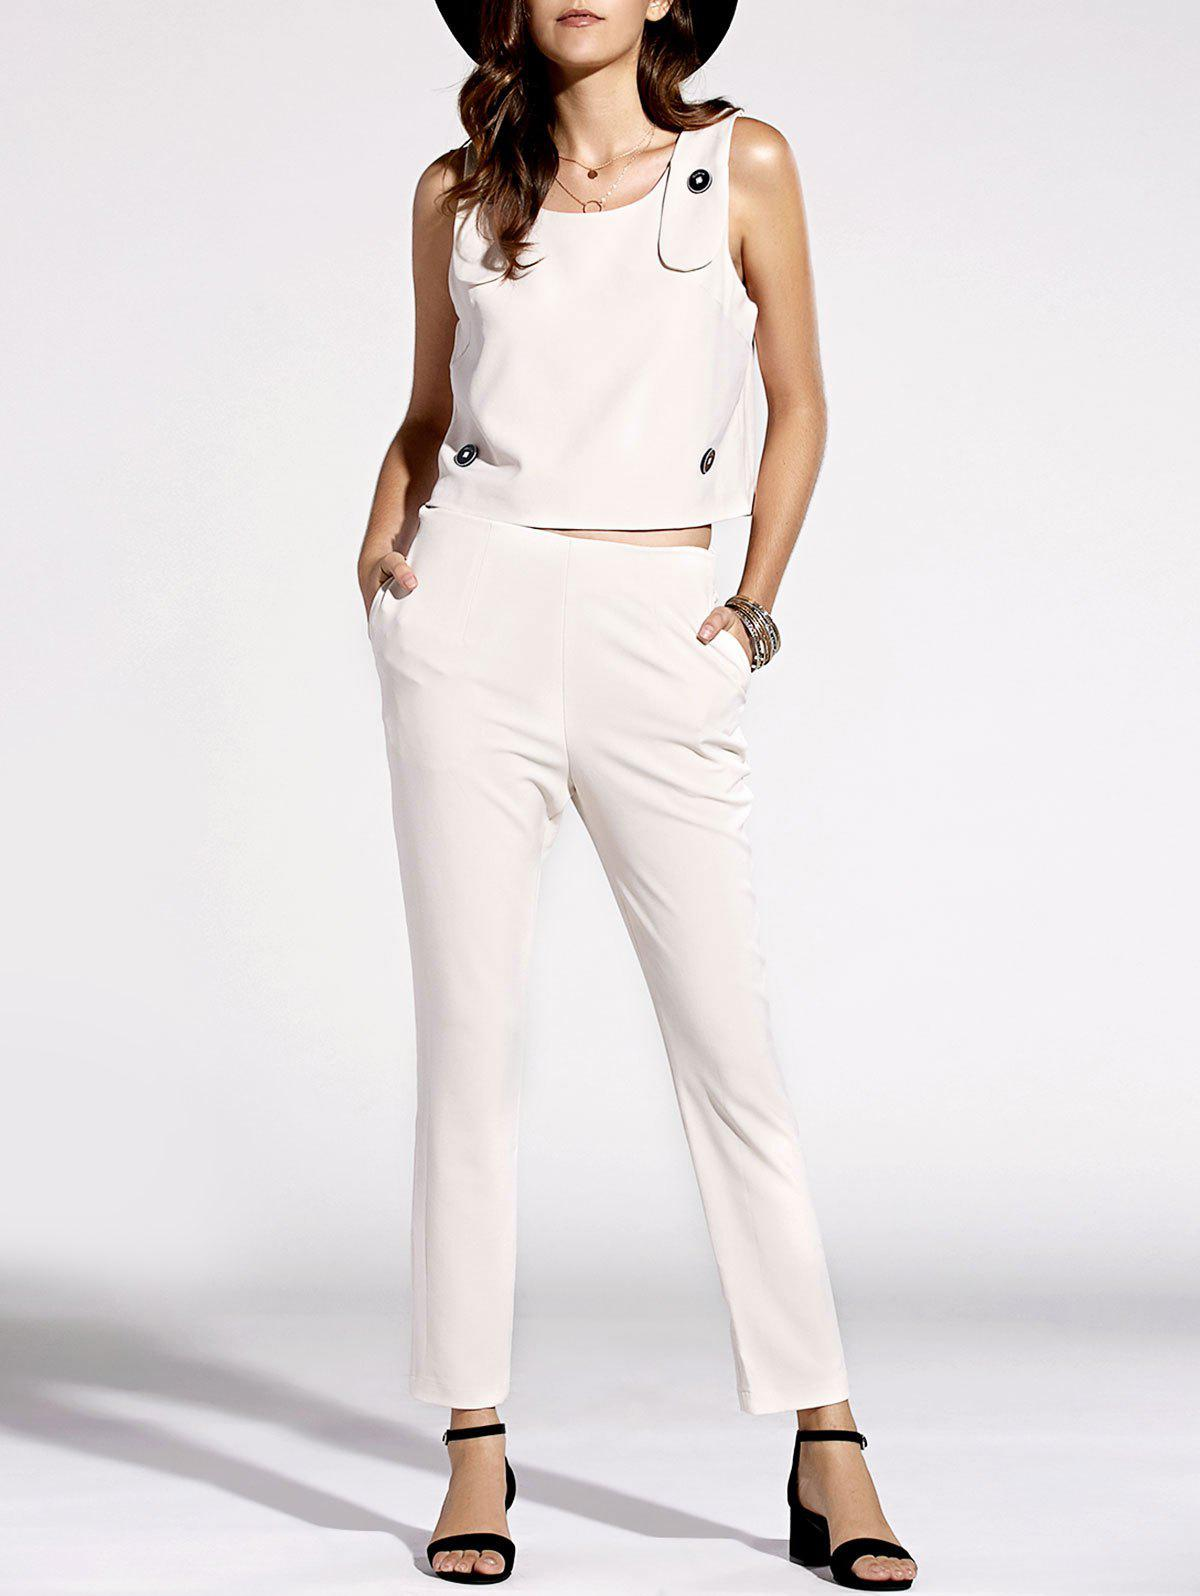 Stylish Scoop Neck Top and Solid Color Pants Set For Women